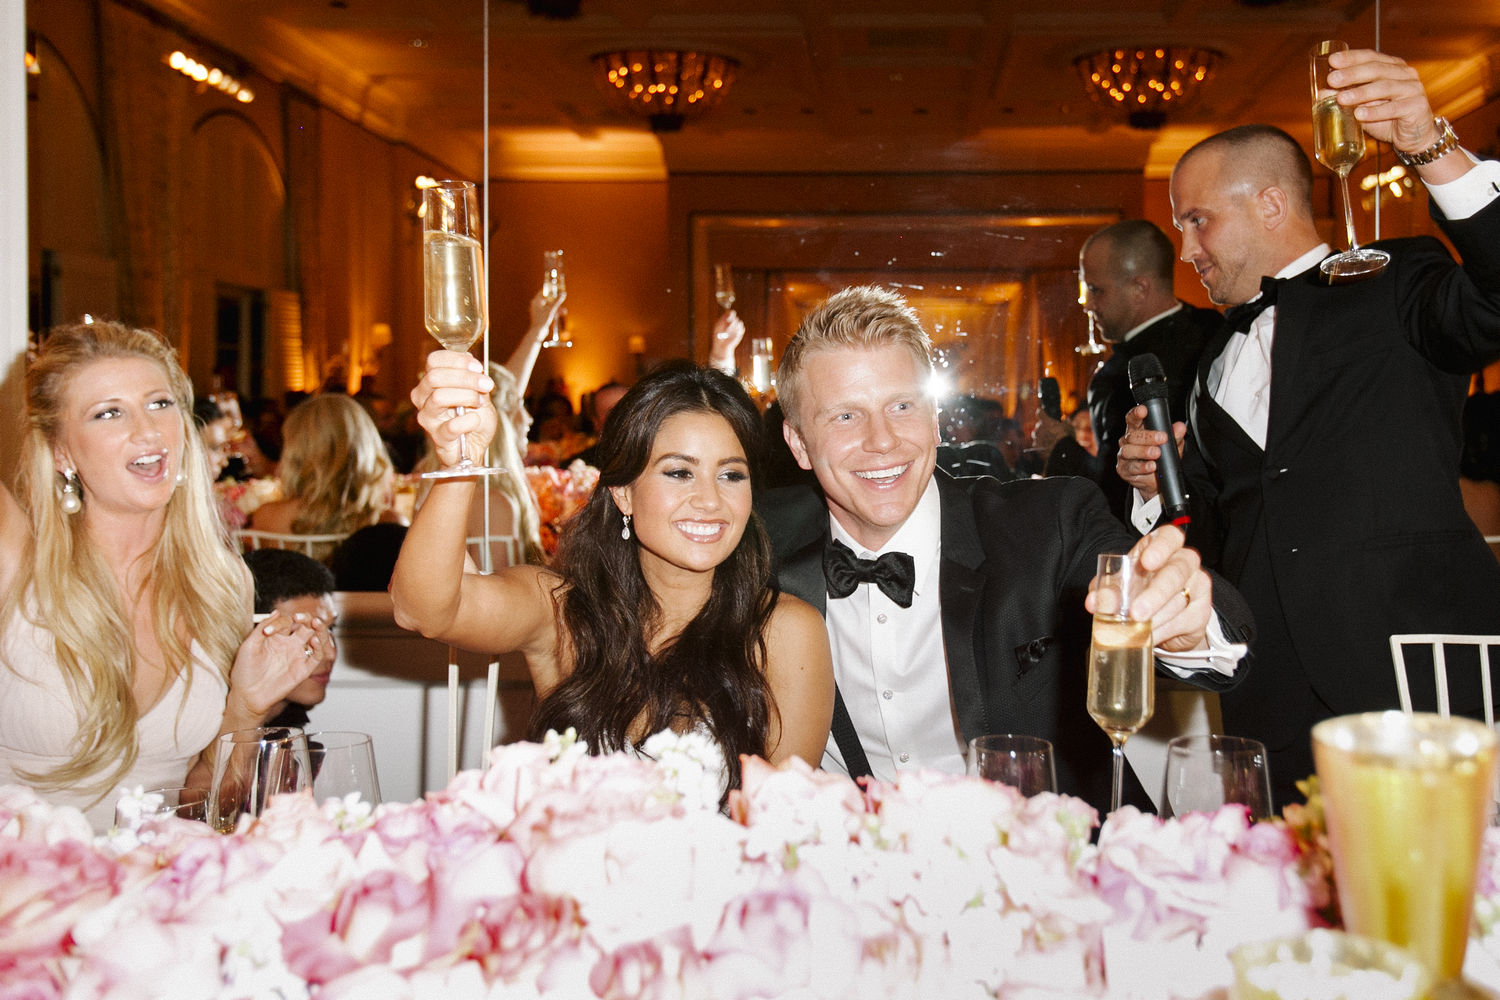 wedding-abc-bachelor-sean-lowe-catherine-guidici-johnandjoseph201.jpg